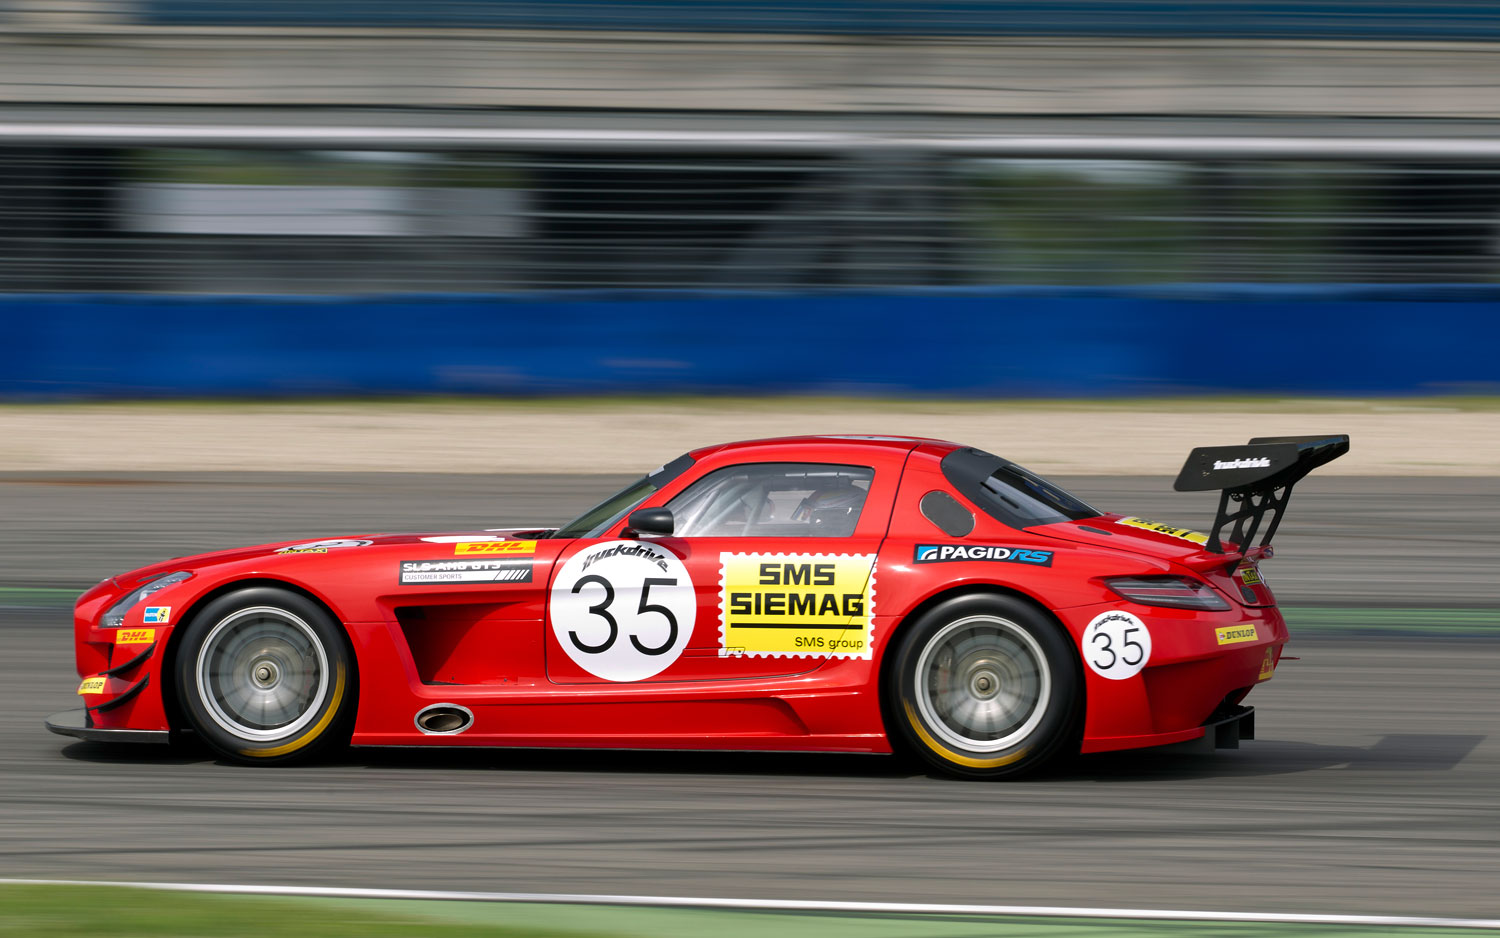 Blast from the past mercedes benz sls amg gt3 wearing for Mercedes benz gt3